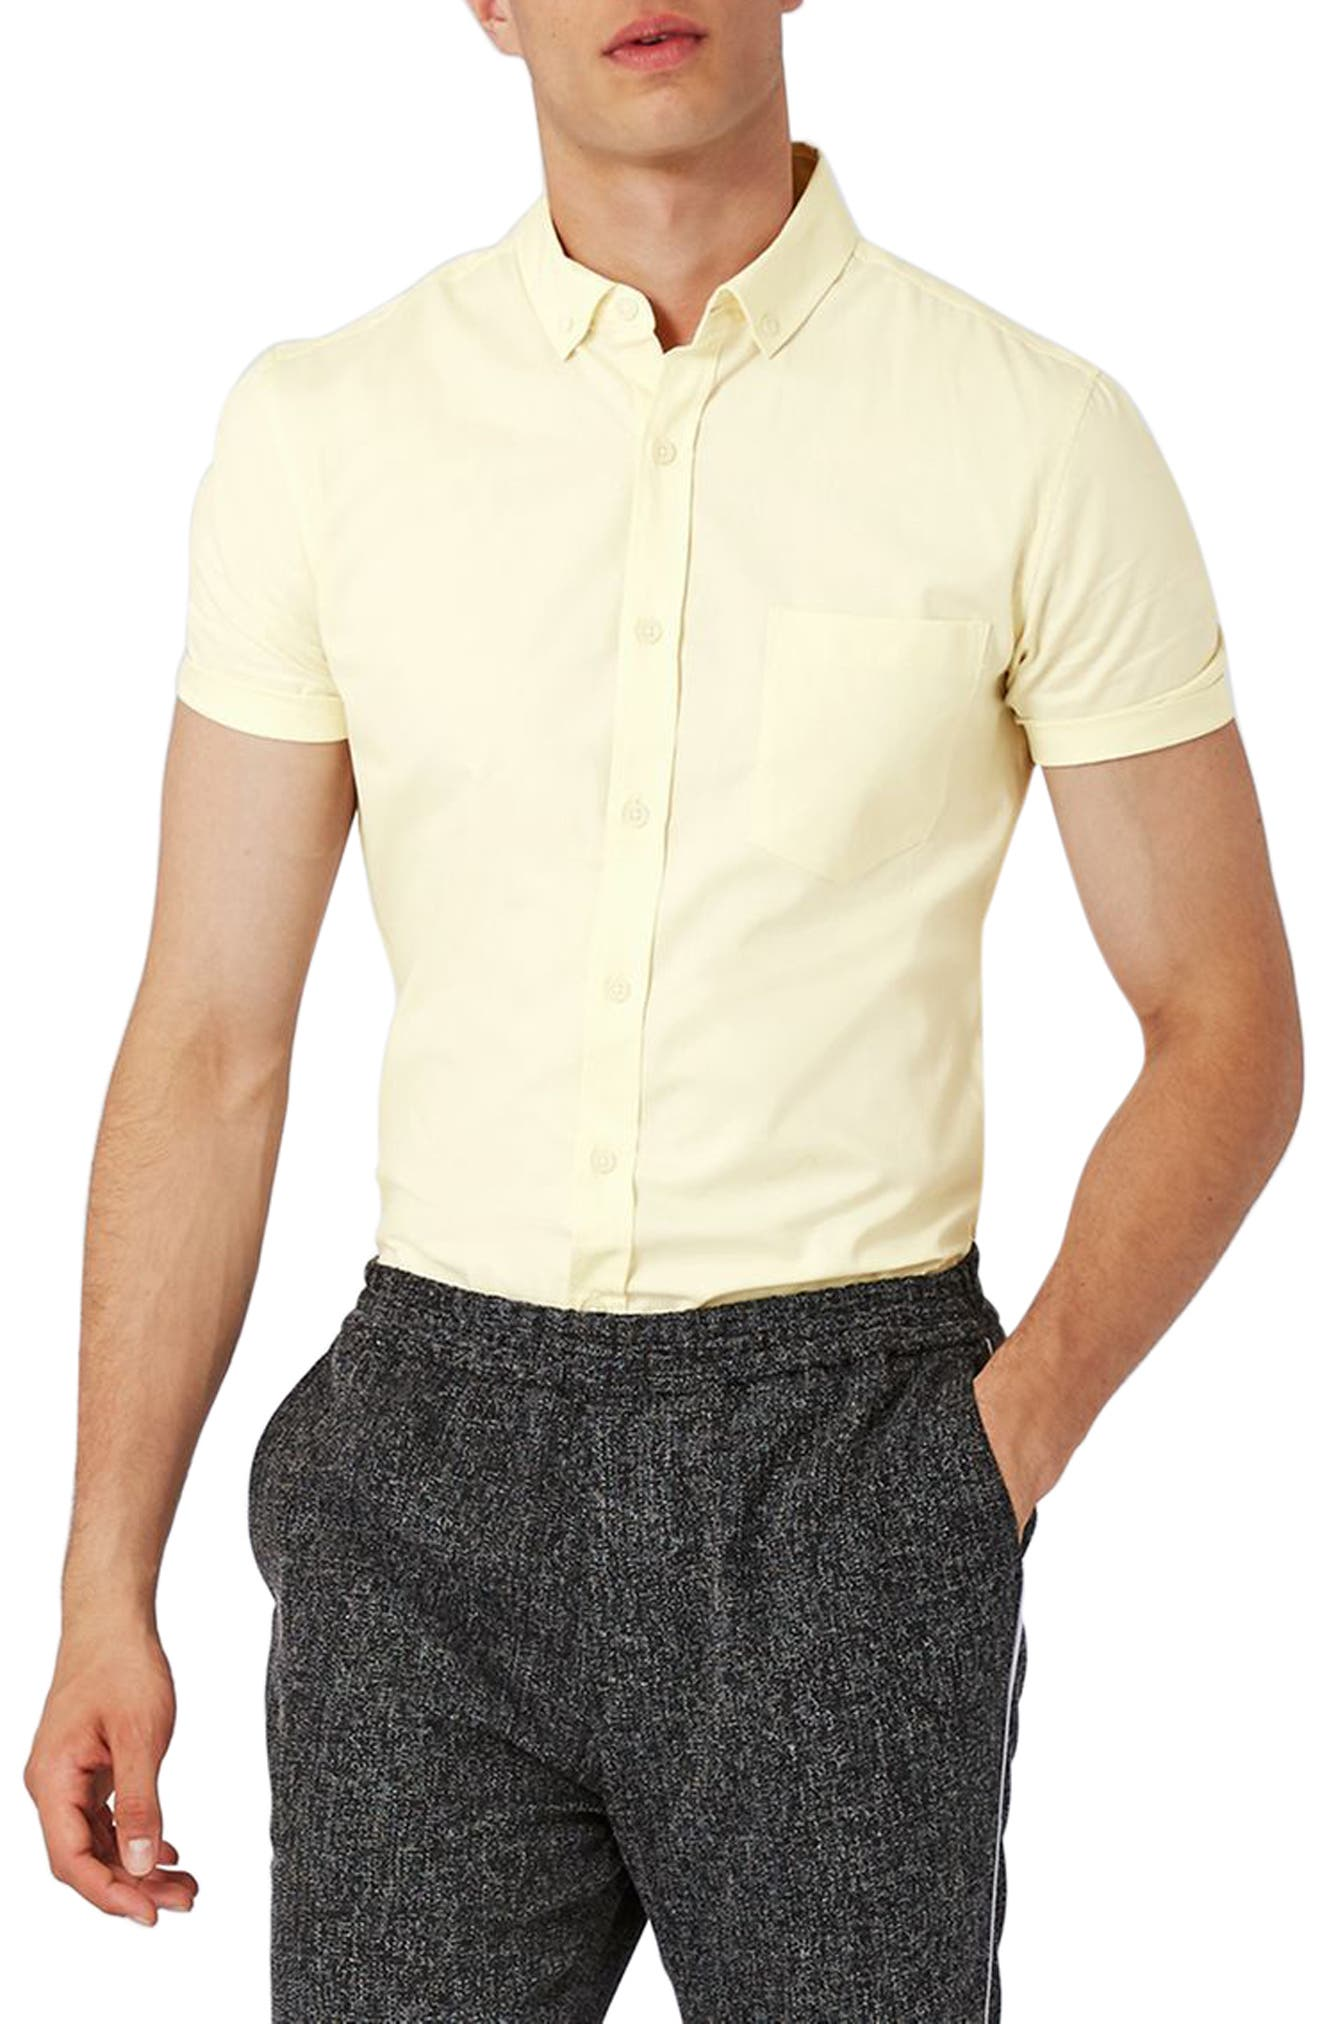 Alternate Image 1 Selected - Topman Slim Fit Stretch Oxford Shirt